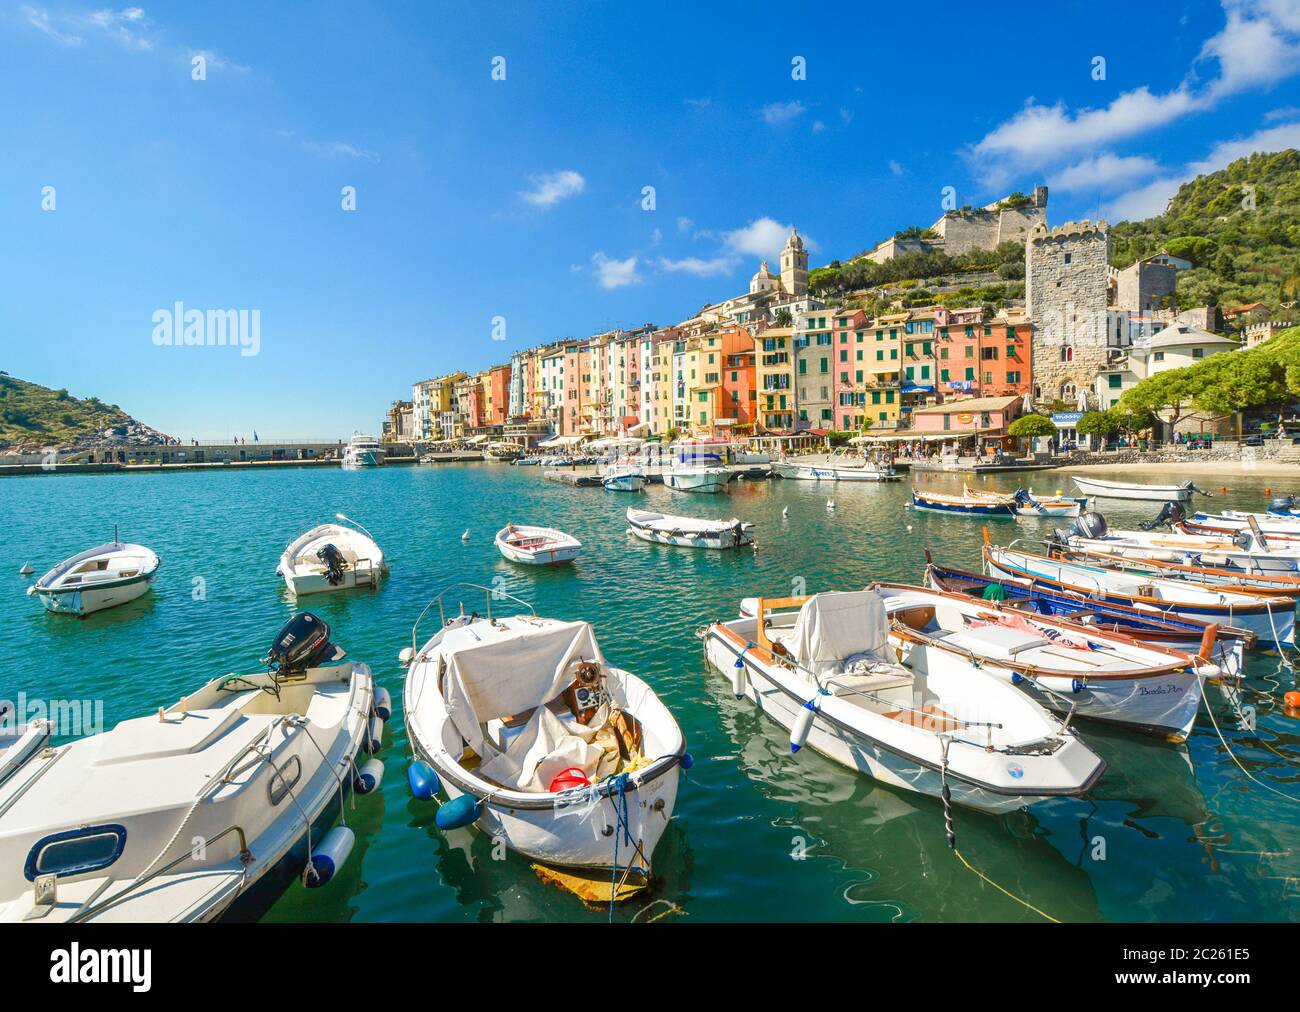 Colorful sea and village of Portovenere, Italy, with it's harbor, pier, cafes and ancient fort and castle on the Ligurian Coast of Italy Stock Photo